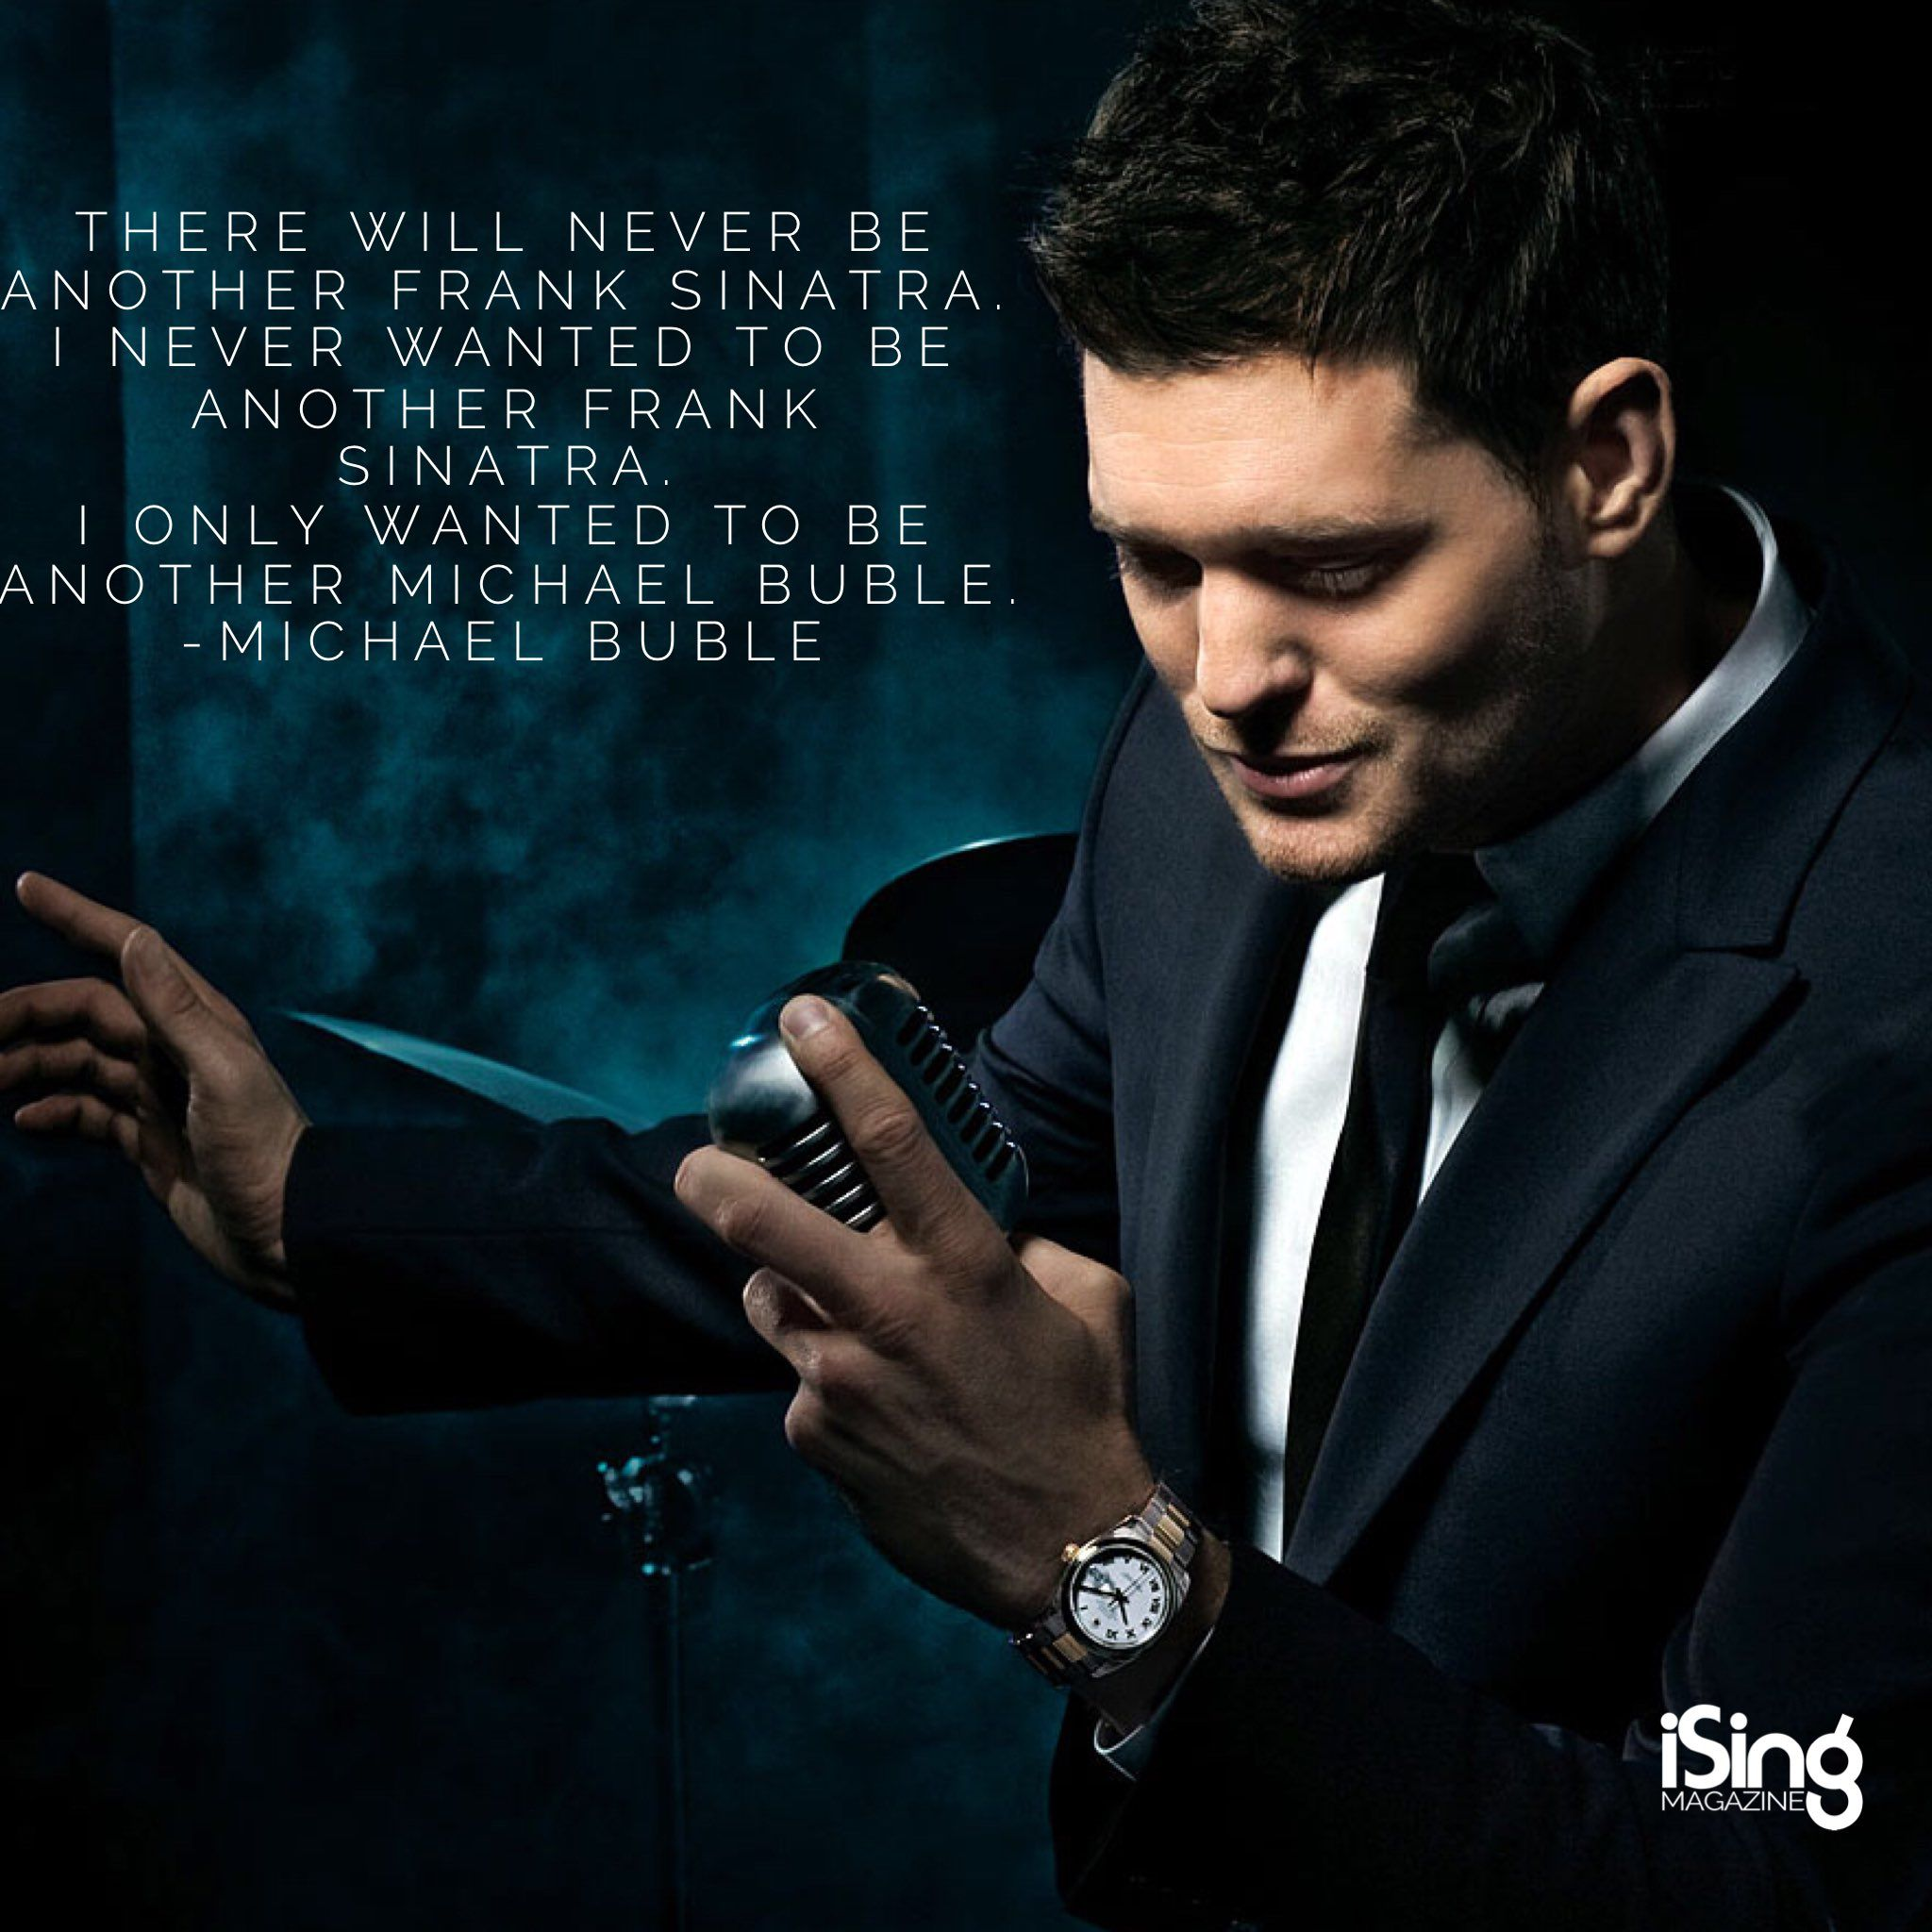 """iSingMag on Twitter: """"Happy Birthday to four-time Grammy winner and smooth crooner @michaelbuble! #iSingDoYou #MichaelBuble https://t.co/TOfkWVBstE"""""""